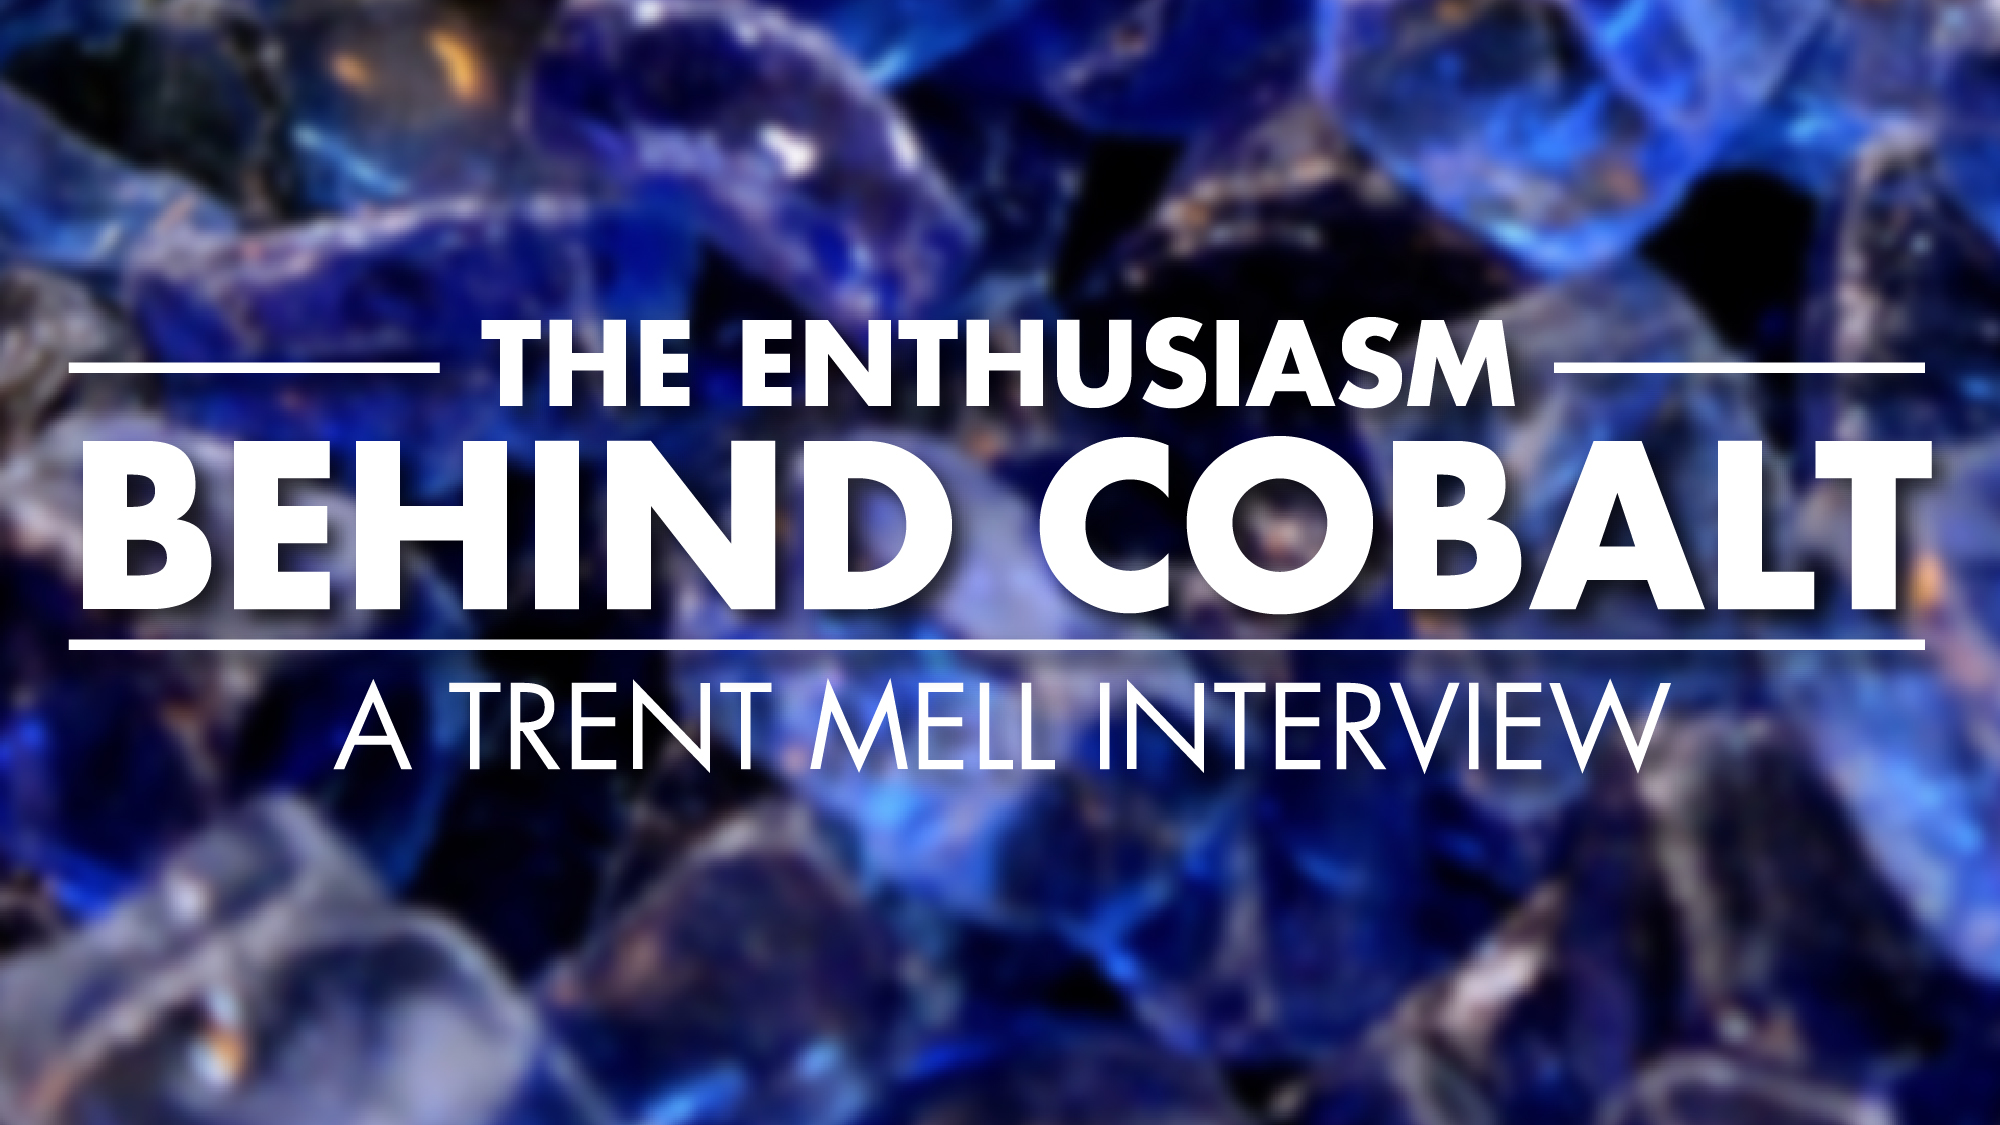 The Enthusiasm Behind Cobalt – Trent Mell Interview